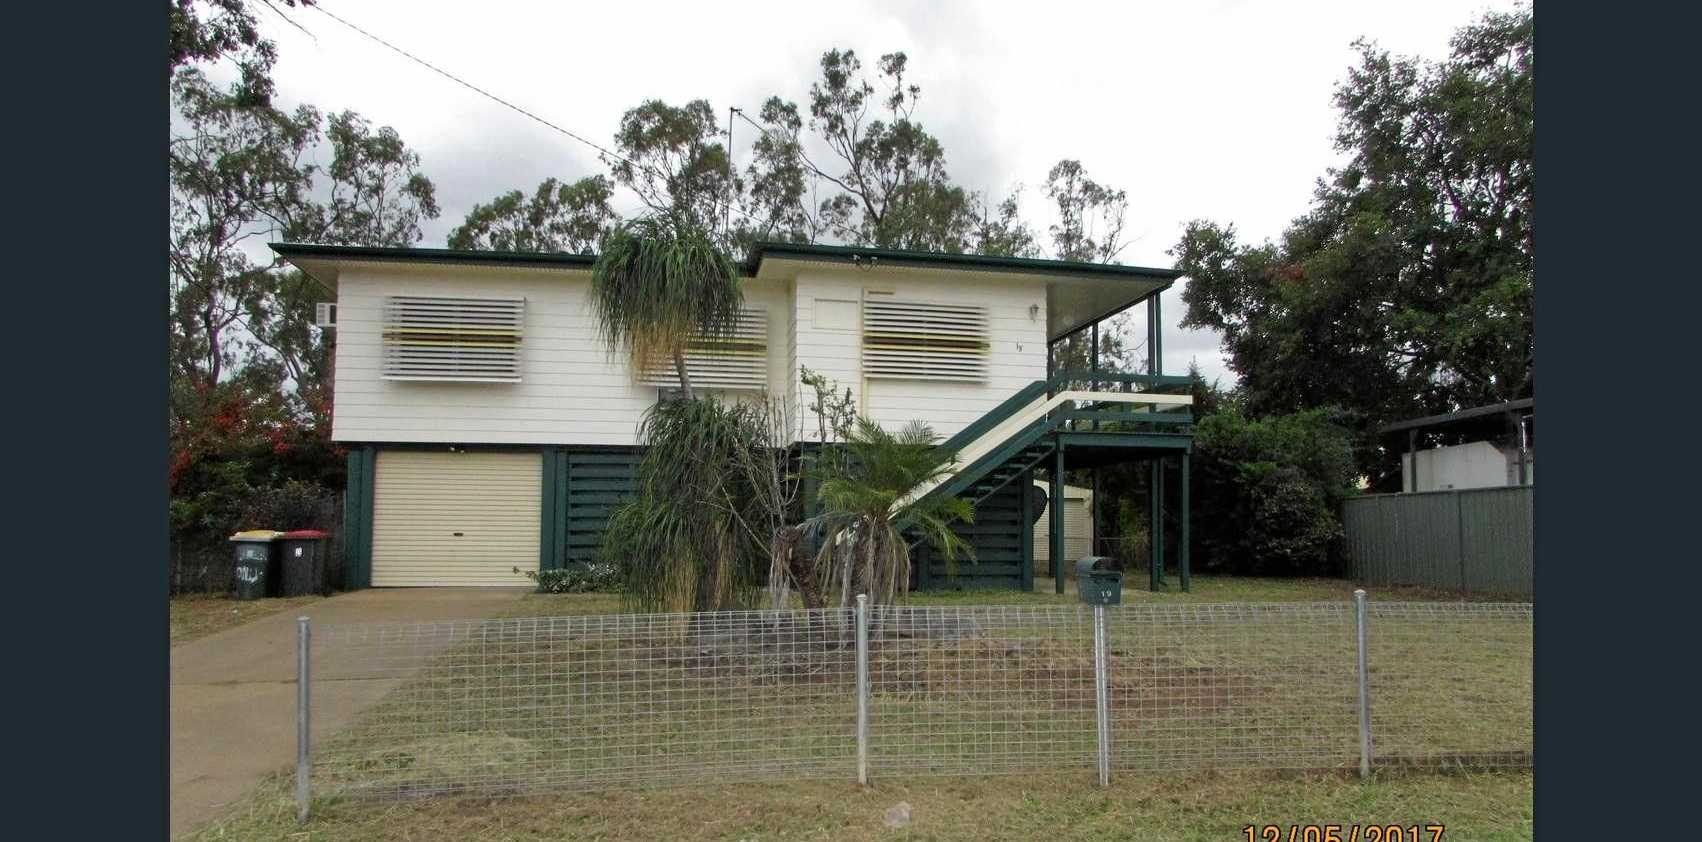 This Moranbah property increased in price by 72 per cent in six months.